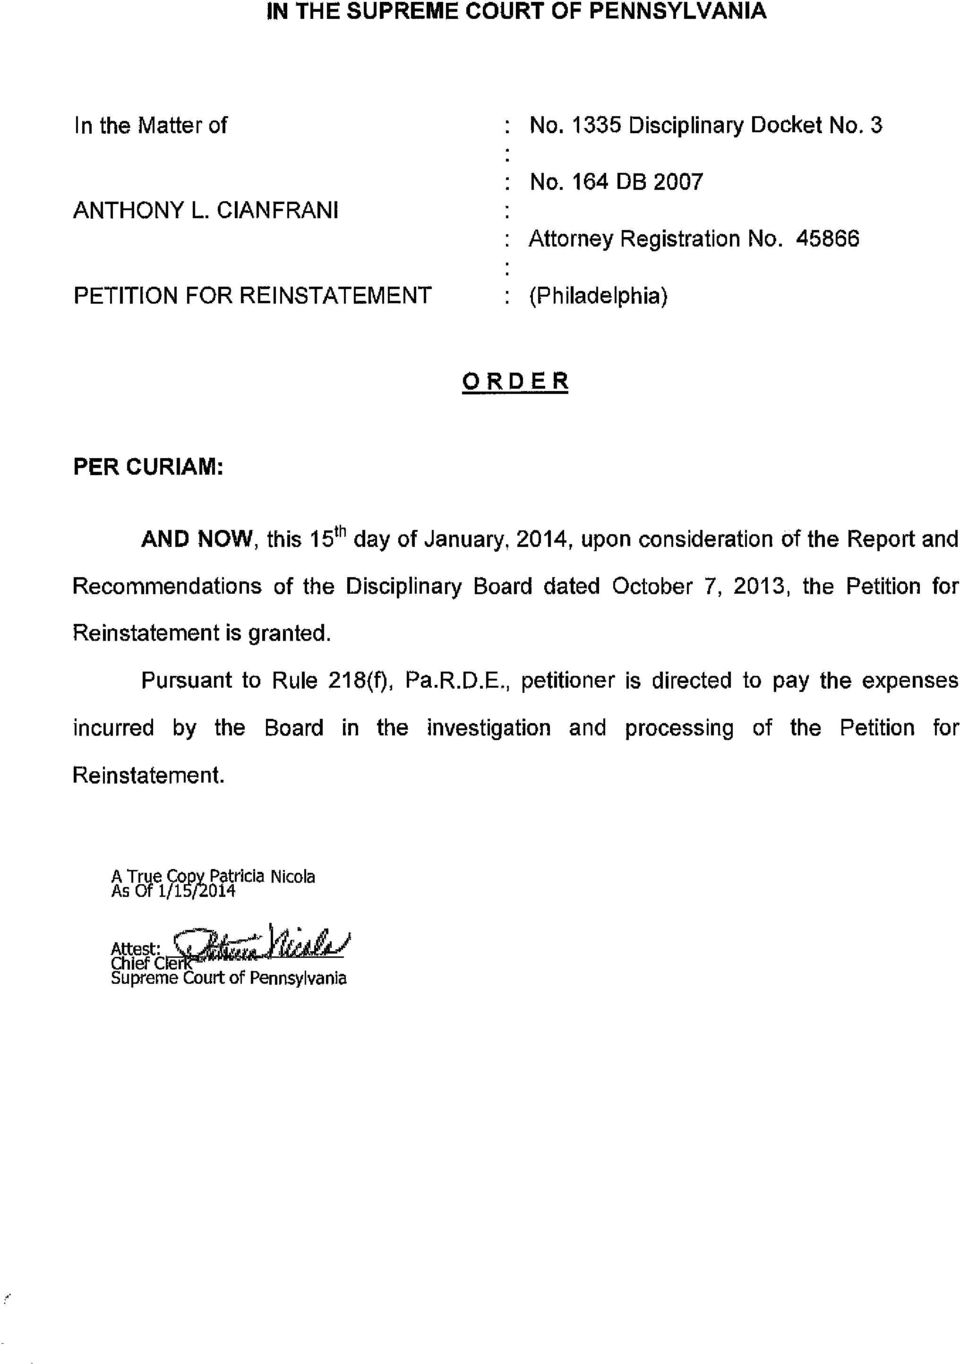 45866 (Philadelphia) ORDER PER CURIAM: AND NOW, this 15 1 h day of January, 2014, upon consideration of the Report and Recommendations of the Disciplinary Board dated